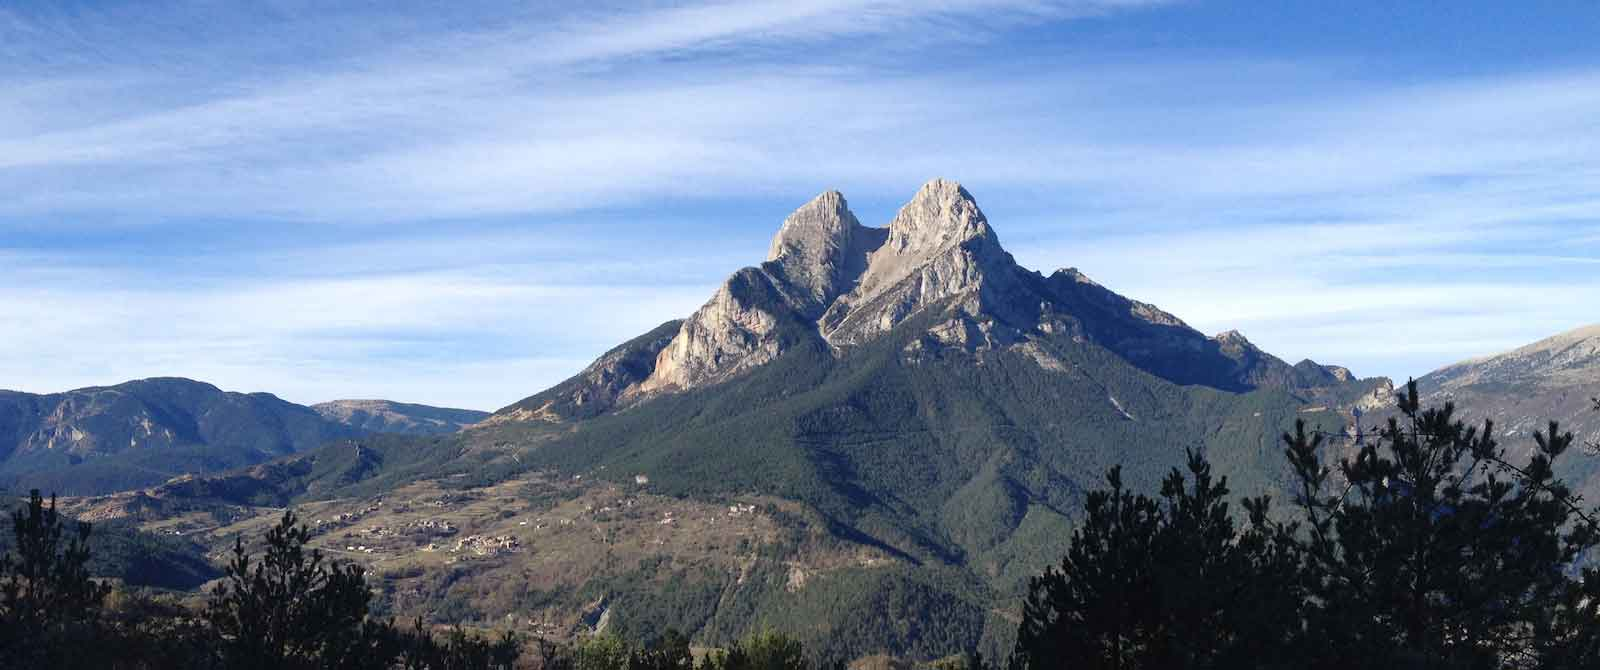 Pyrenean mountain in Catalonia, Spain